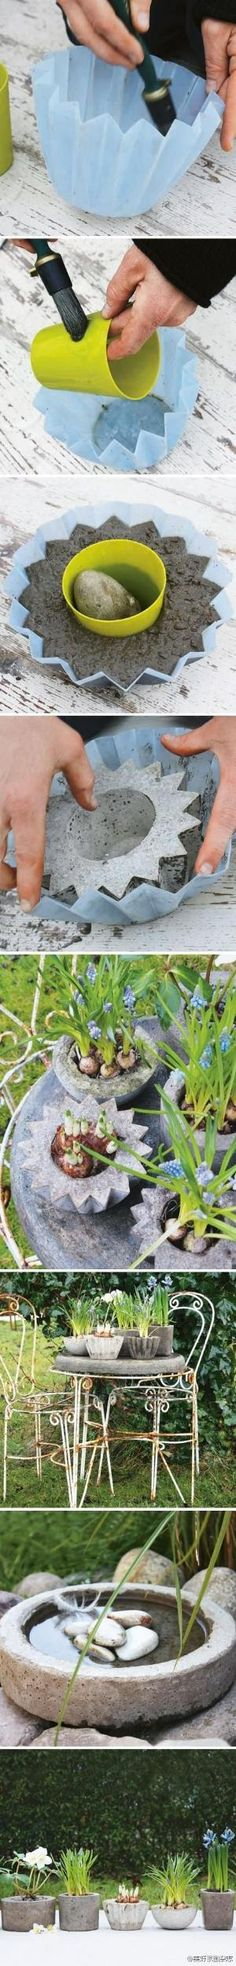 make your own planters #diy #concrete by michelle